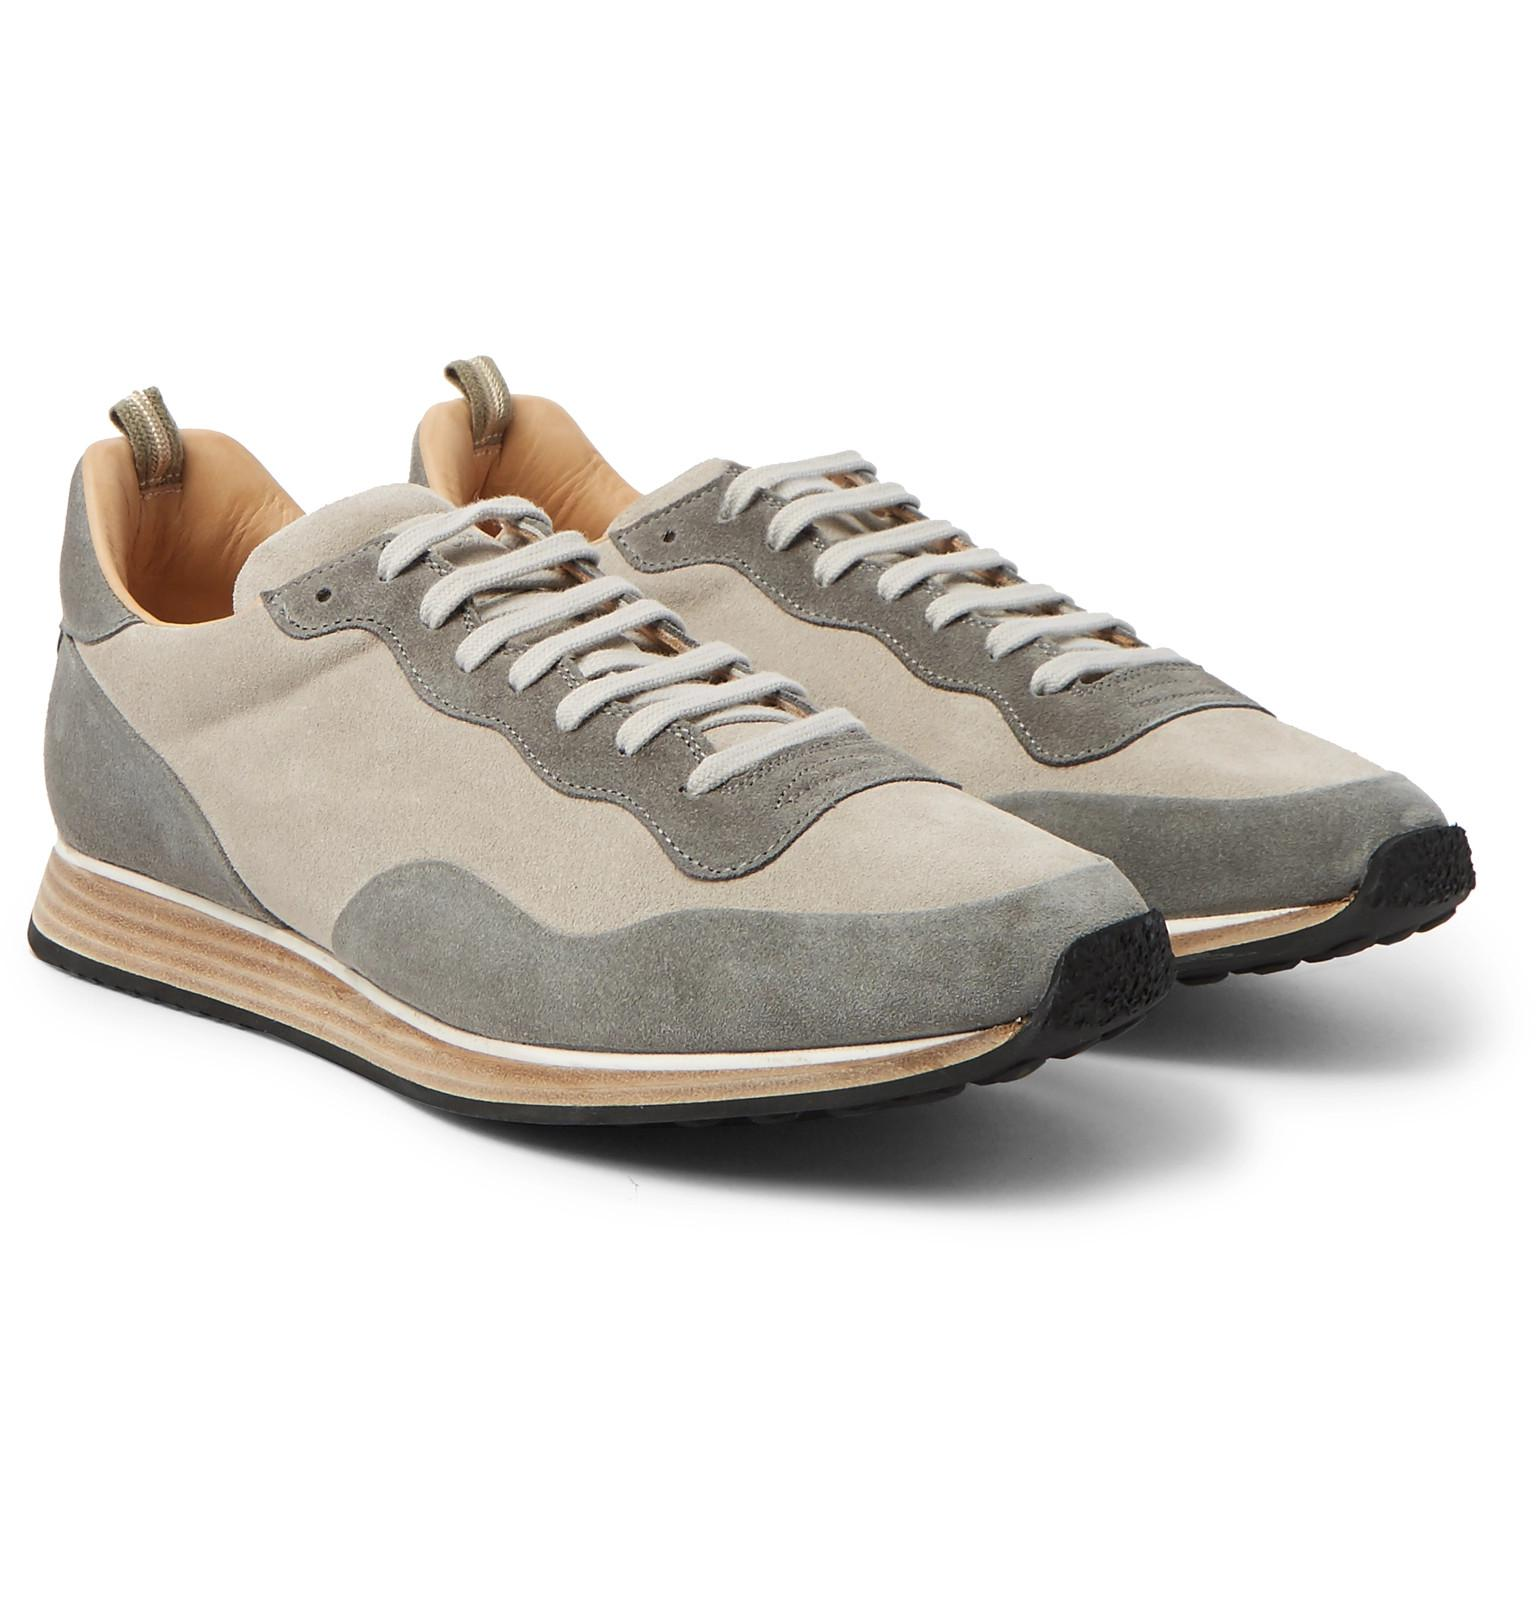 Keino Two-tone Suede Sneakers Officine Creative 3N5xK